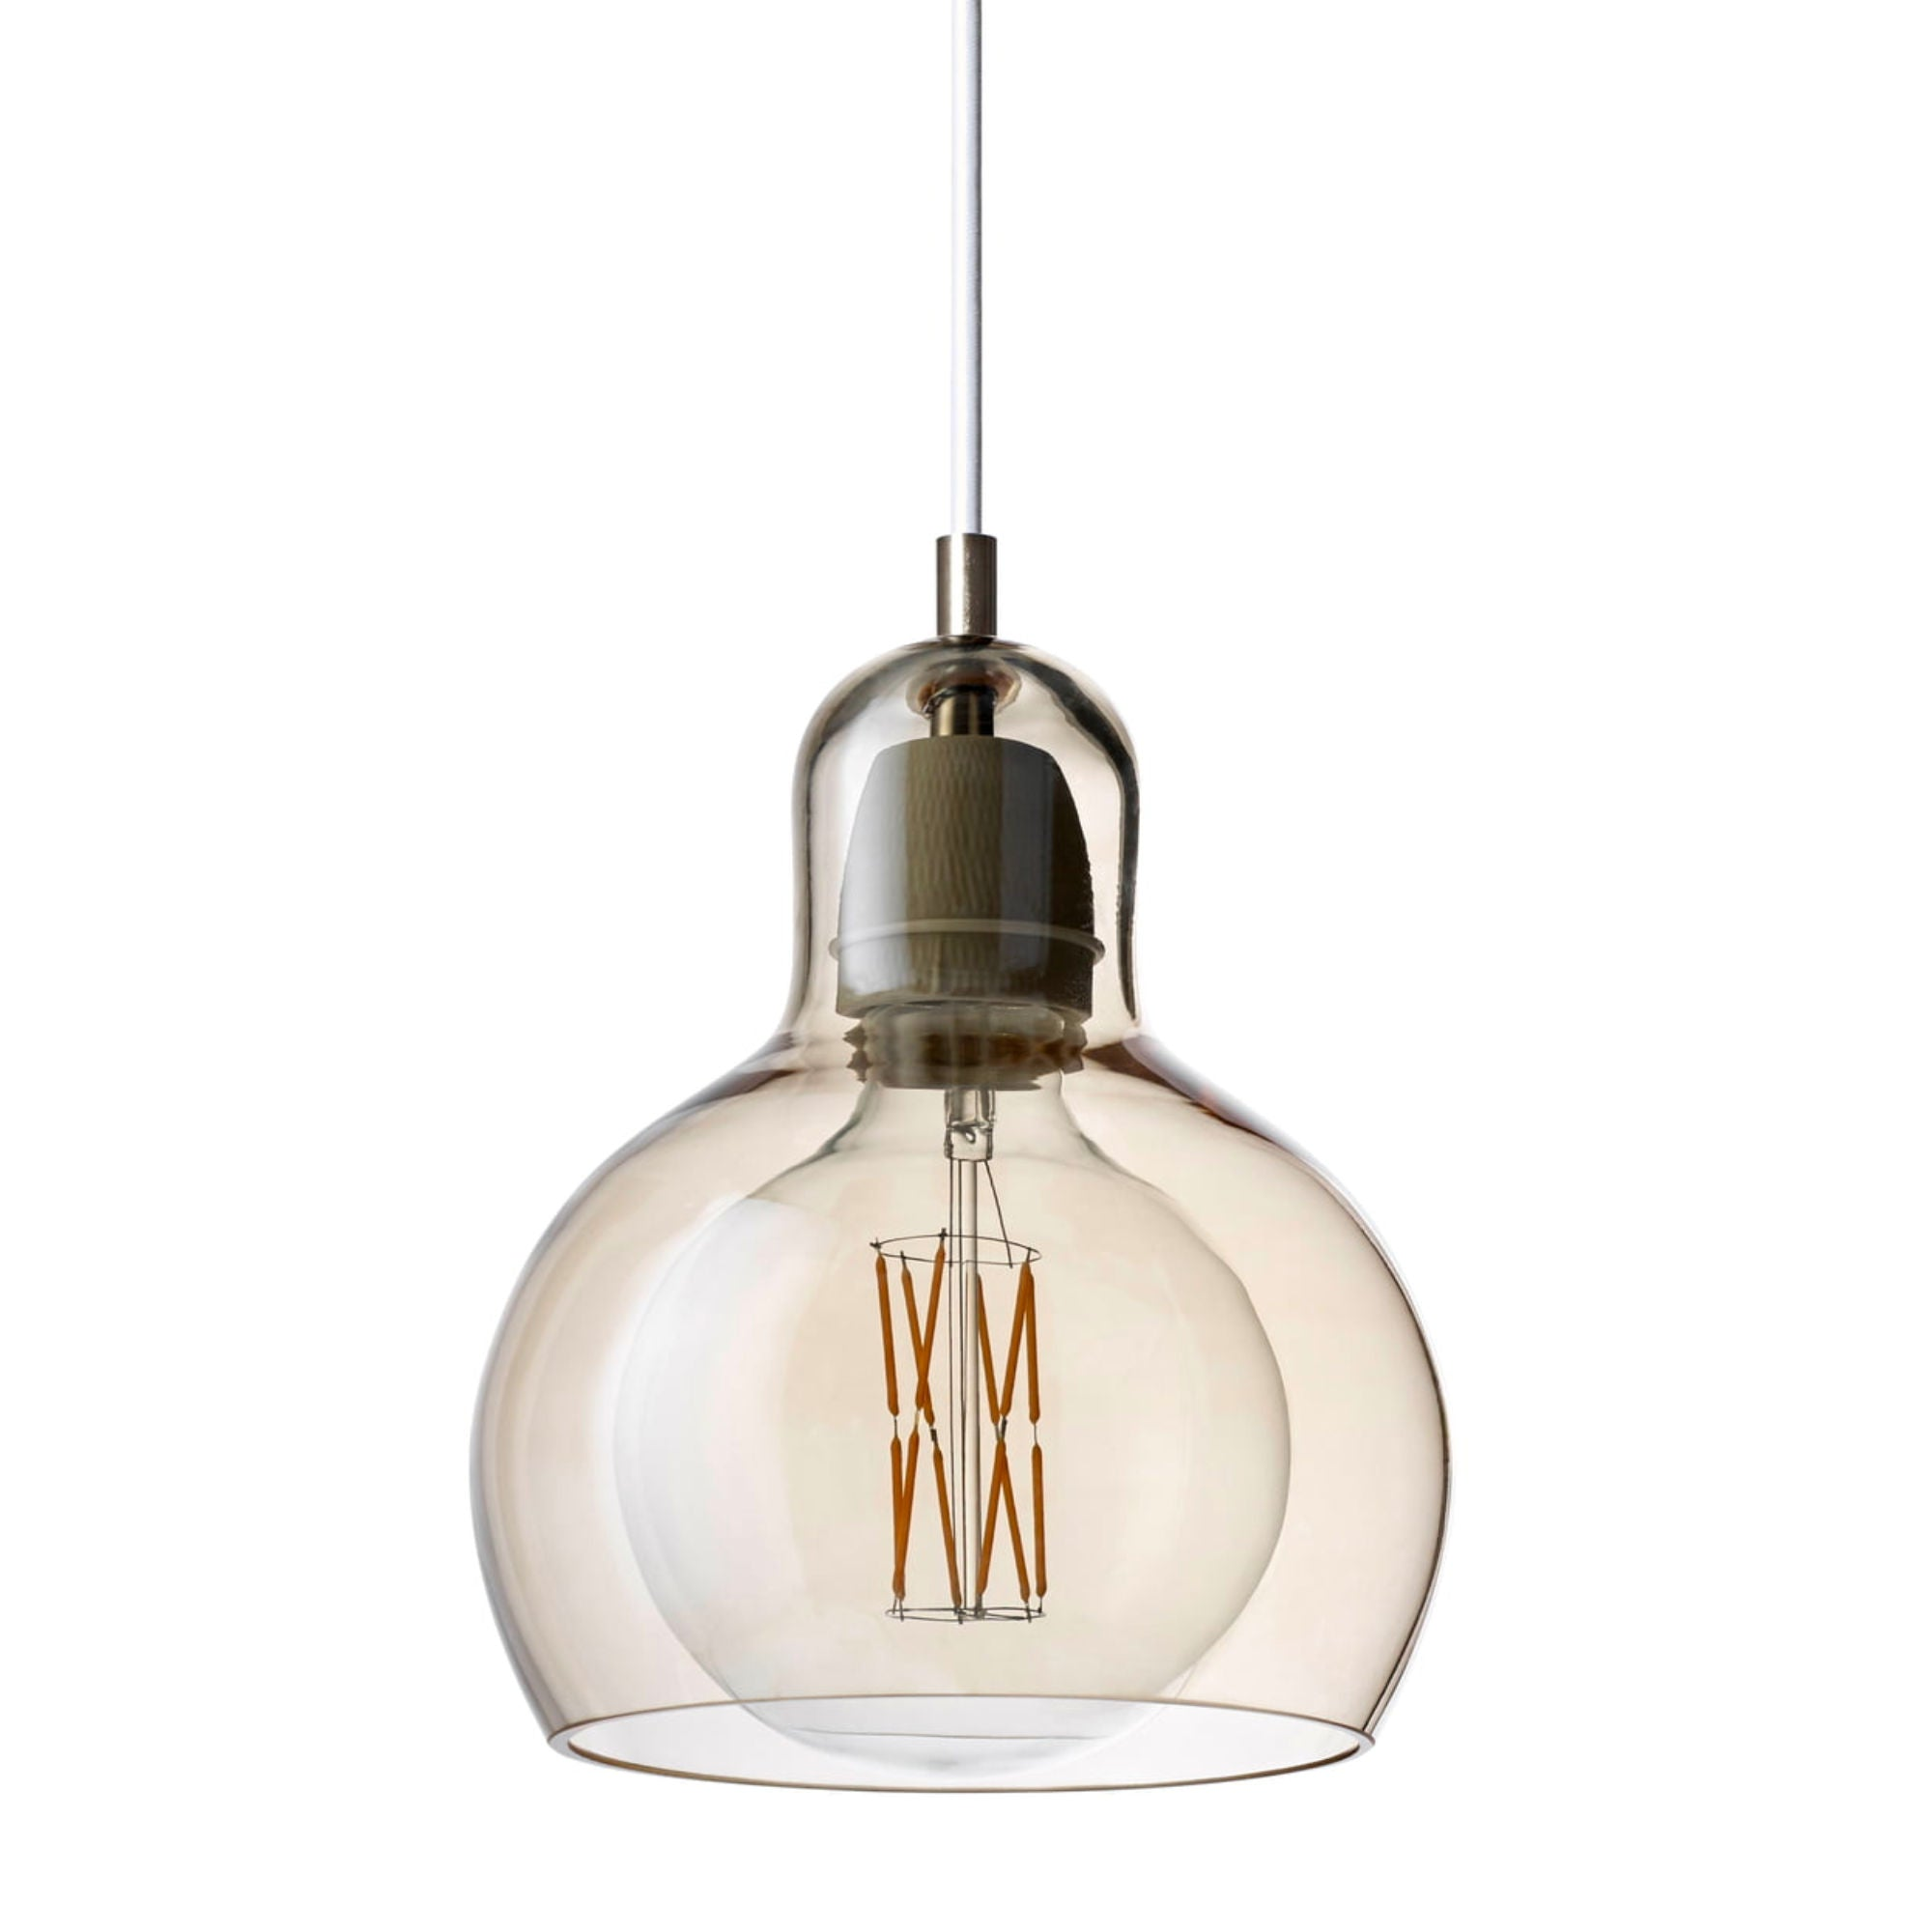 &Tradition SR2 Mega Bulb , gold - fabric cord